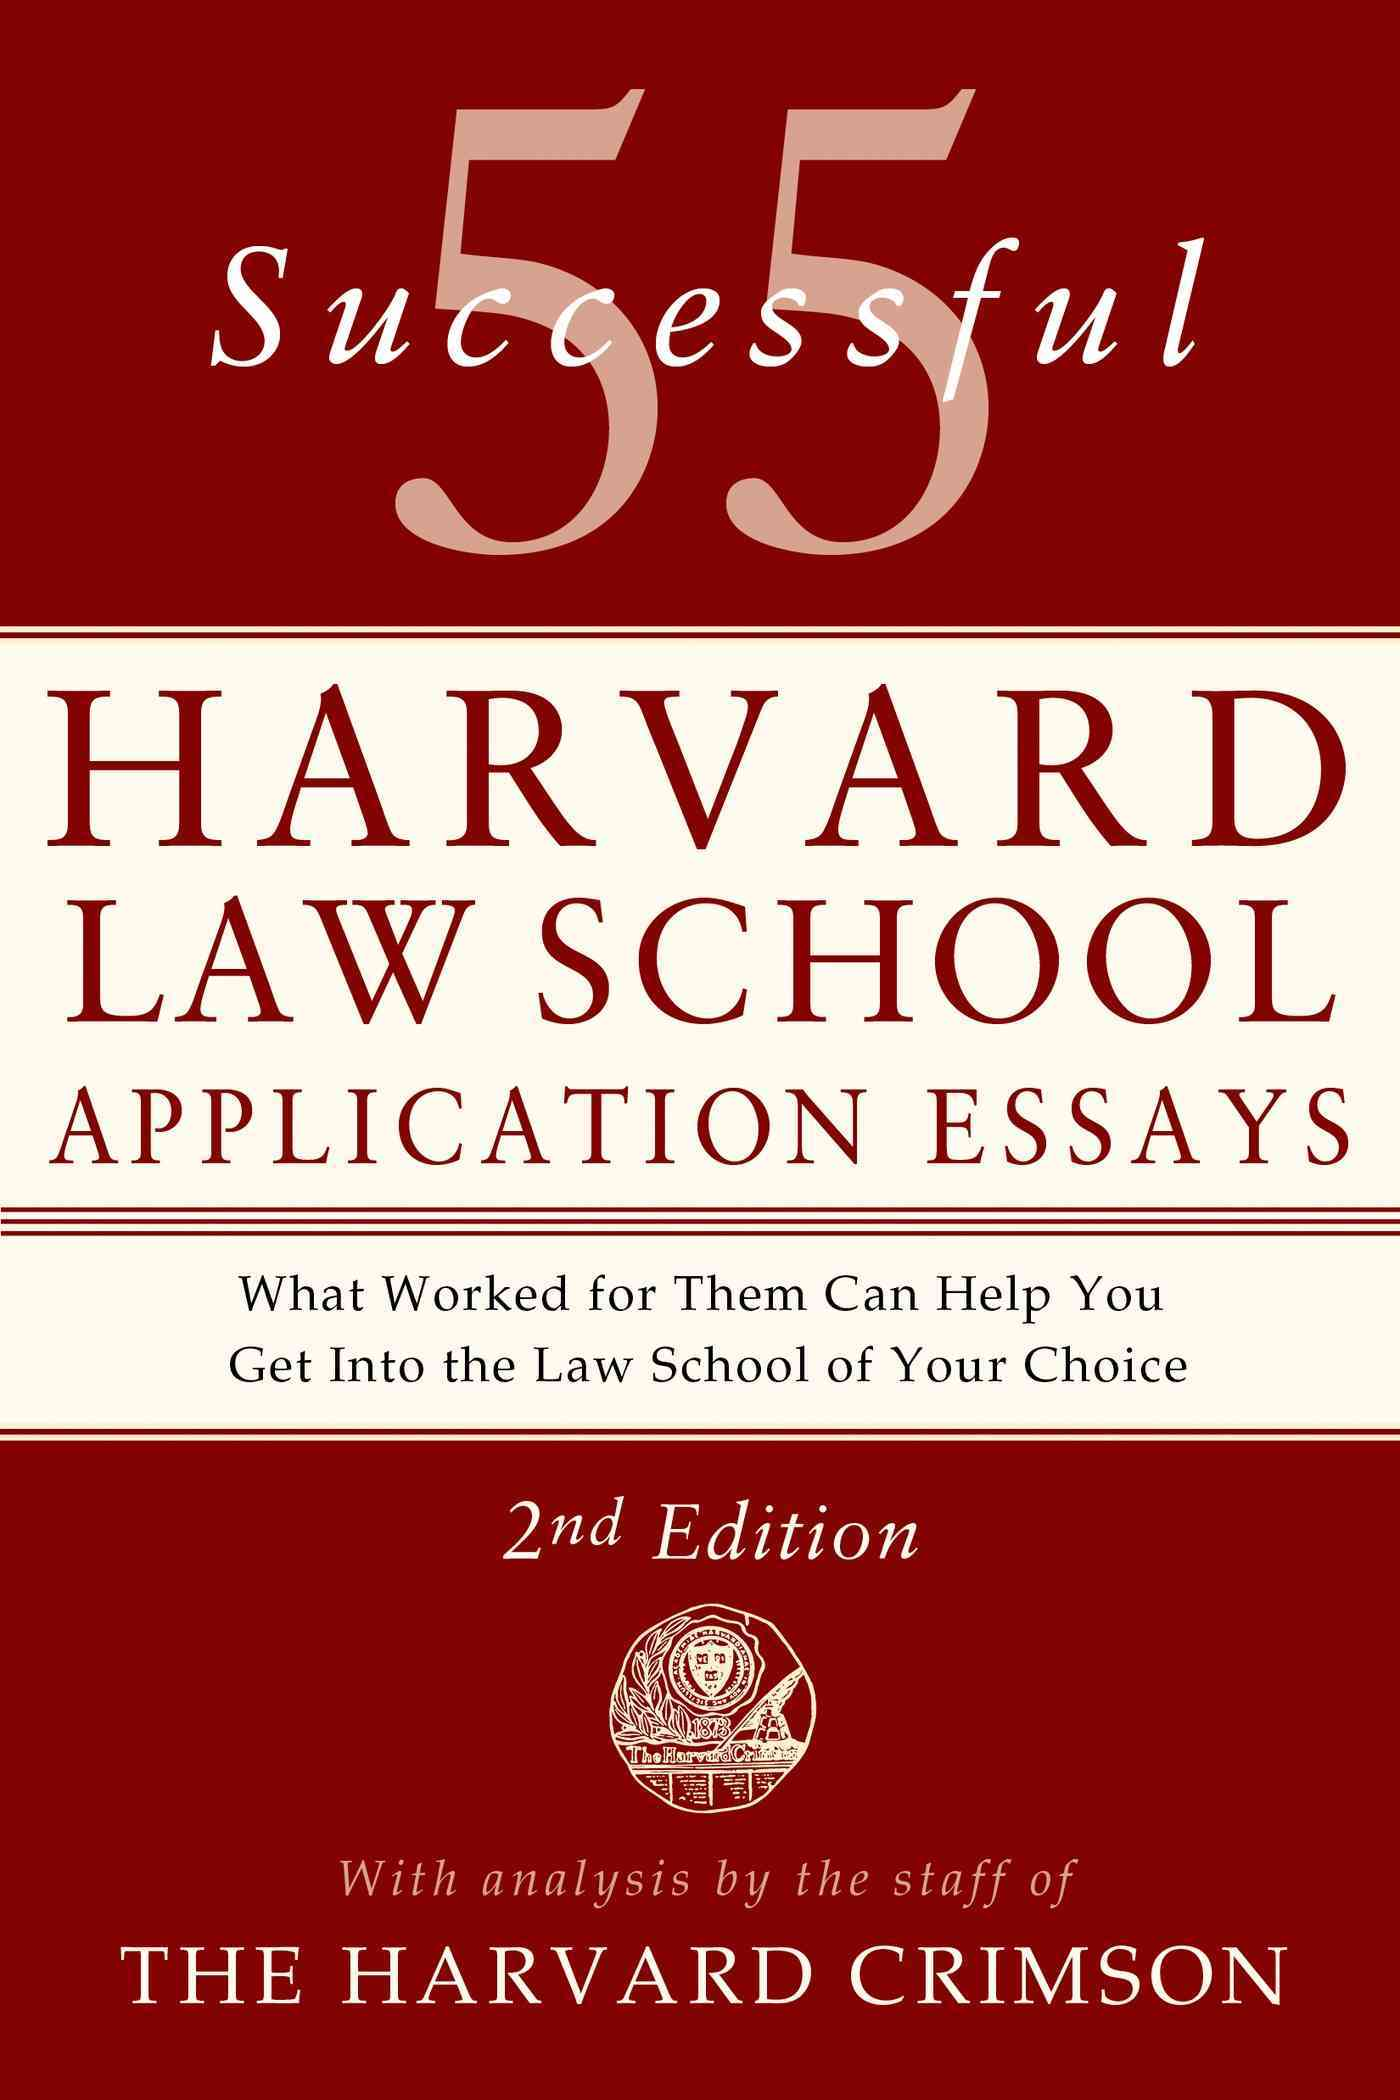 55 Successful Harvard Law School Application Essays By Harvard Crimson (COR)